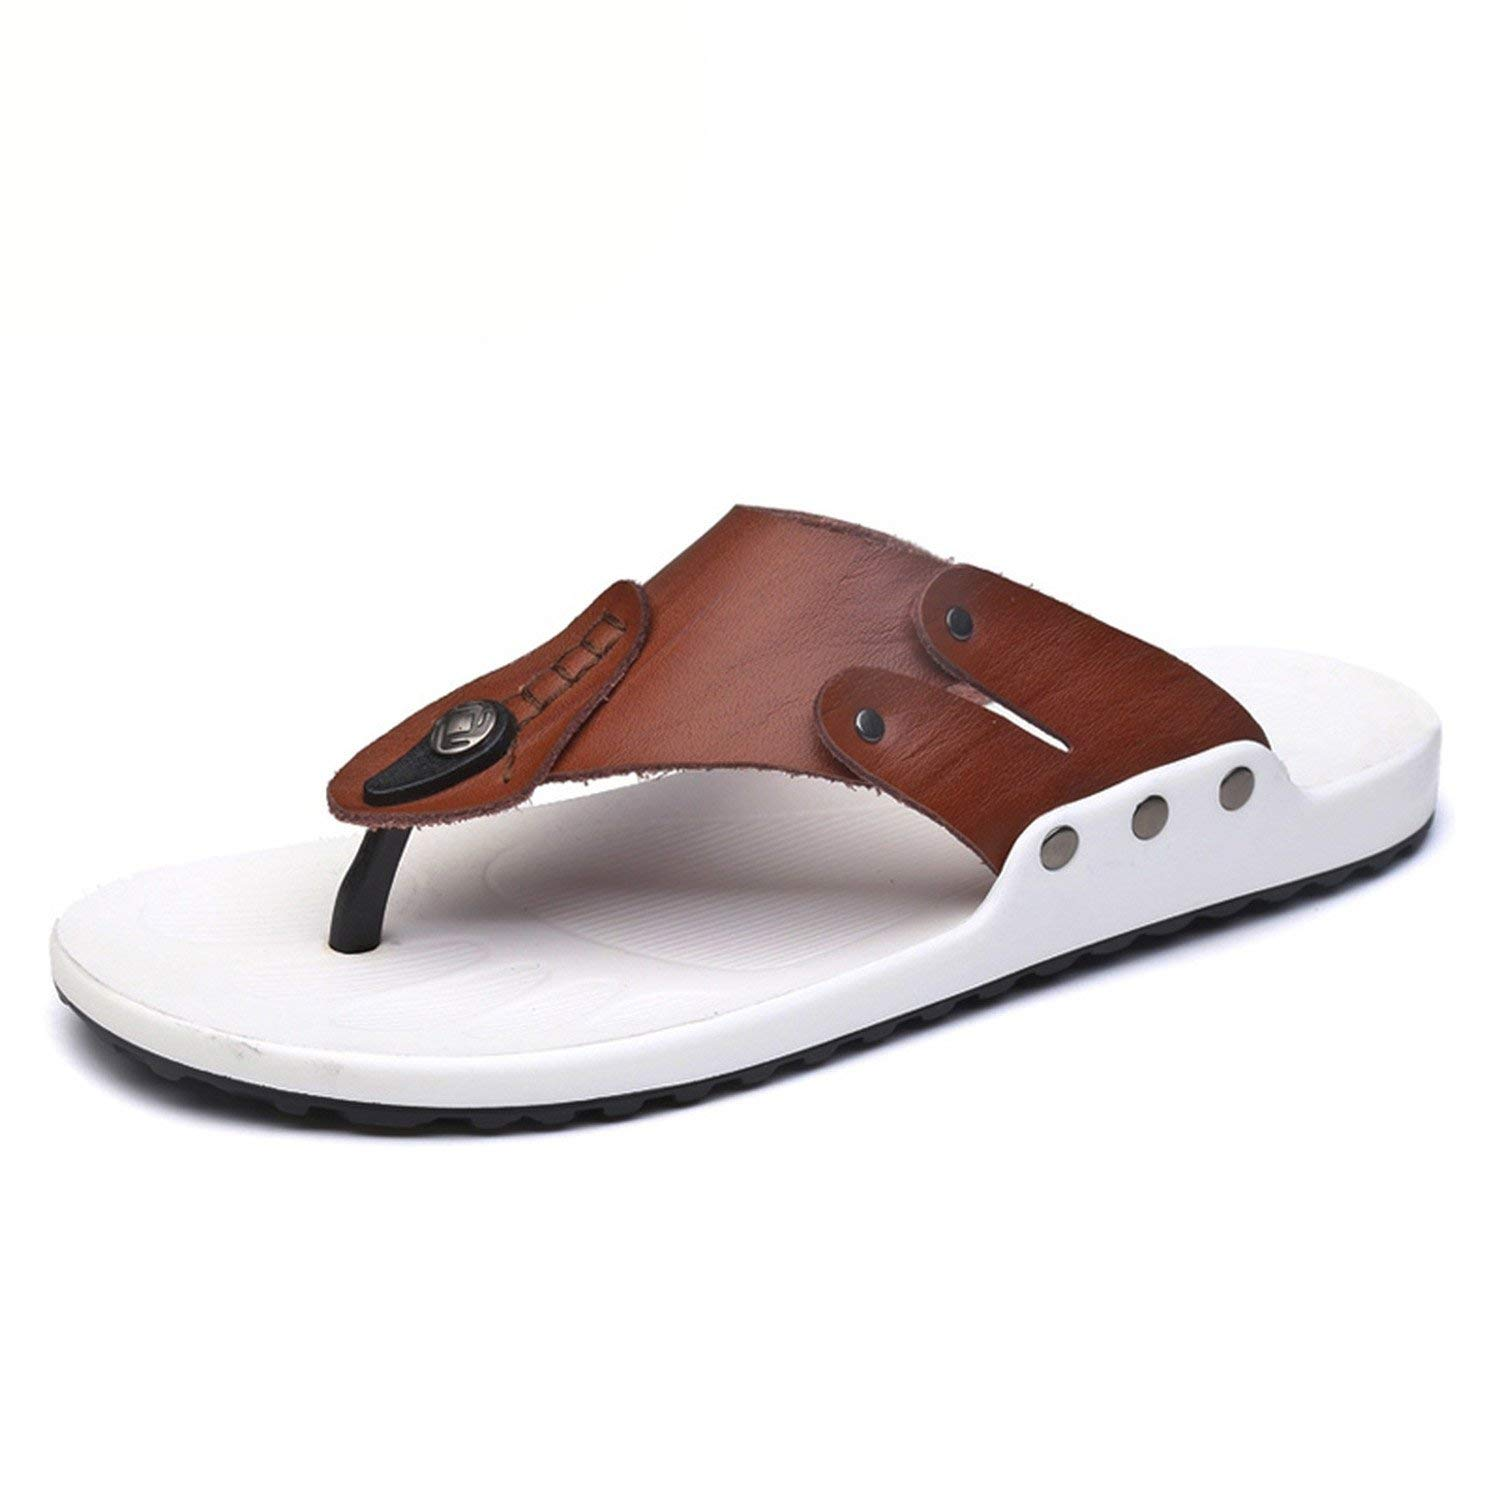 2186b3a2ff84a Get Quotations · Genuine Leather Men Slippers Flip Flops Sneakers for Men  Casual Male Beach Slippers Flip Flops Mens